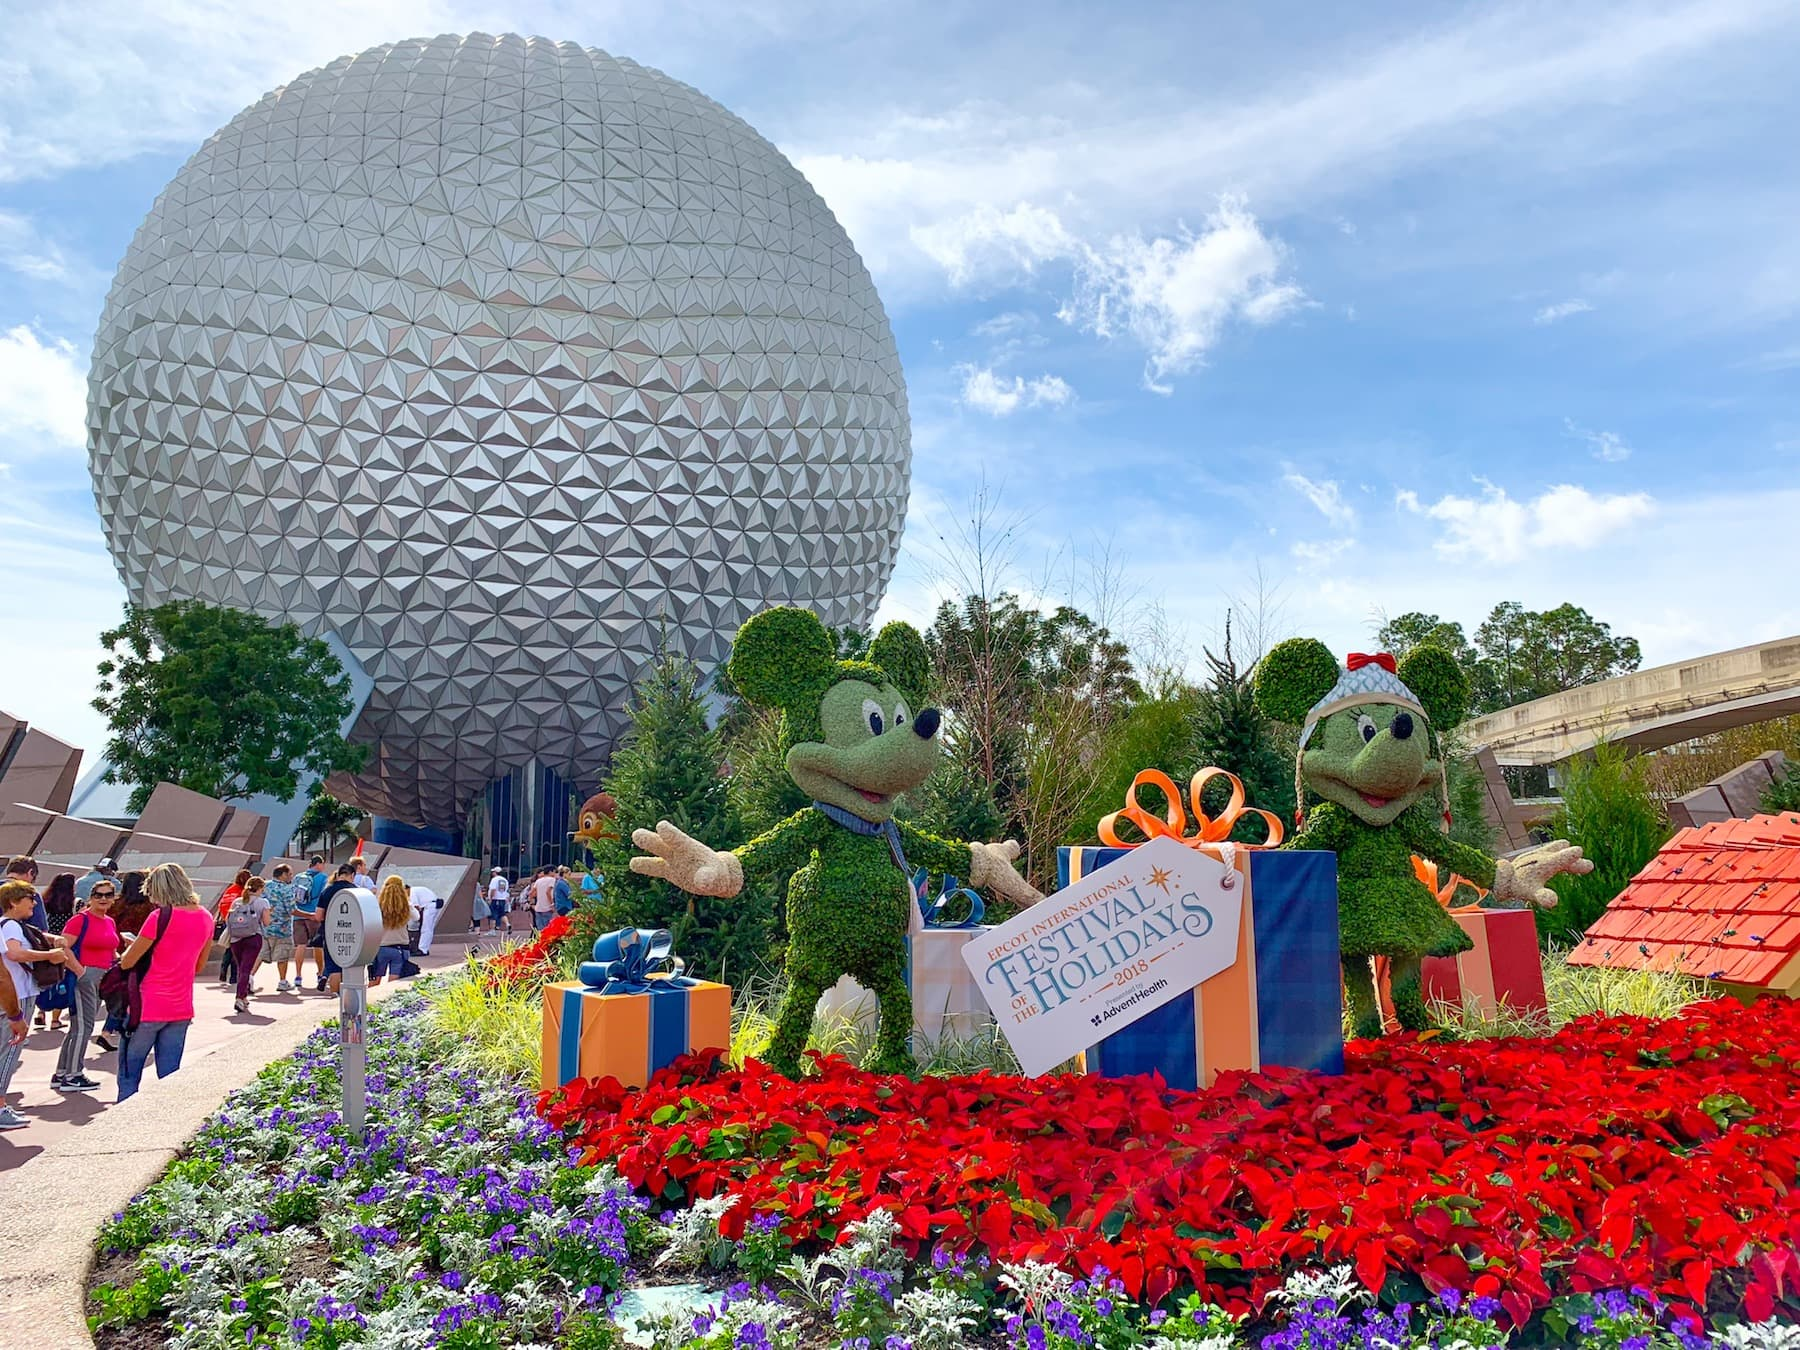 Enjoy Holiday Traditions Around the World at Epcot - Kim and Carrie